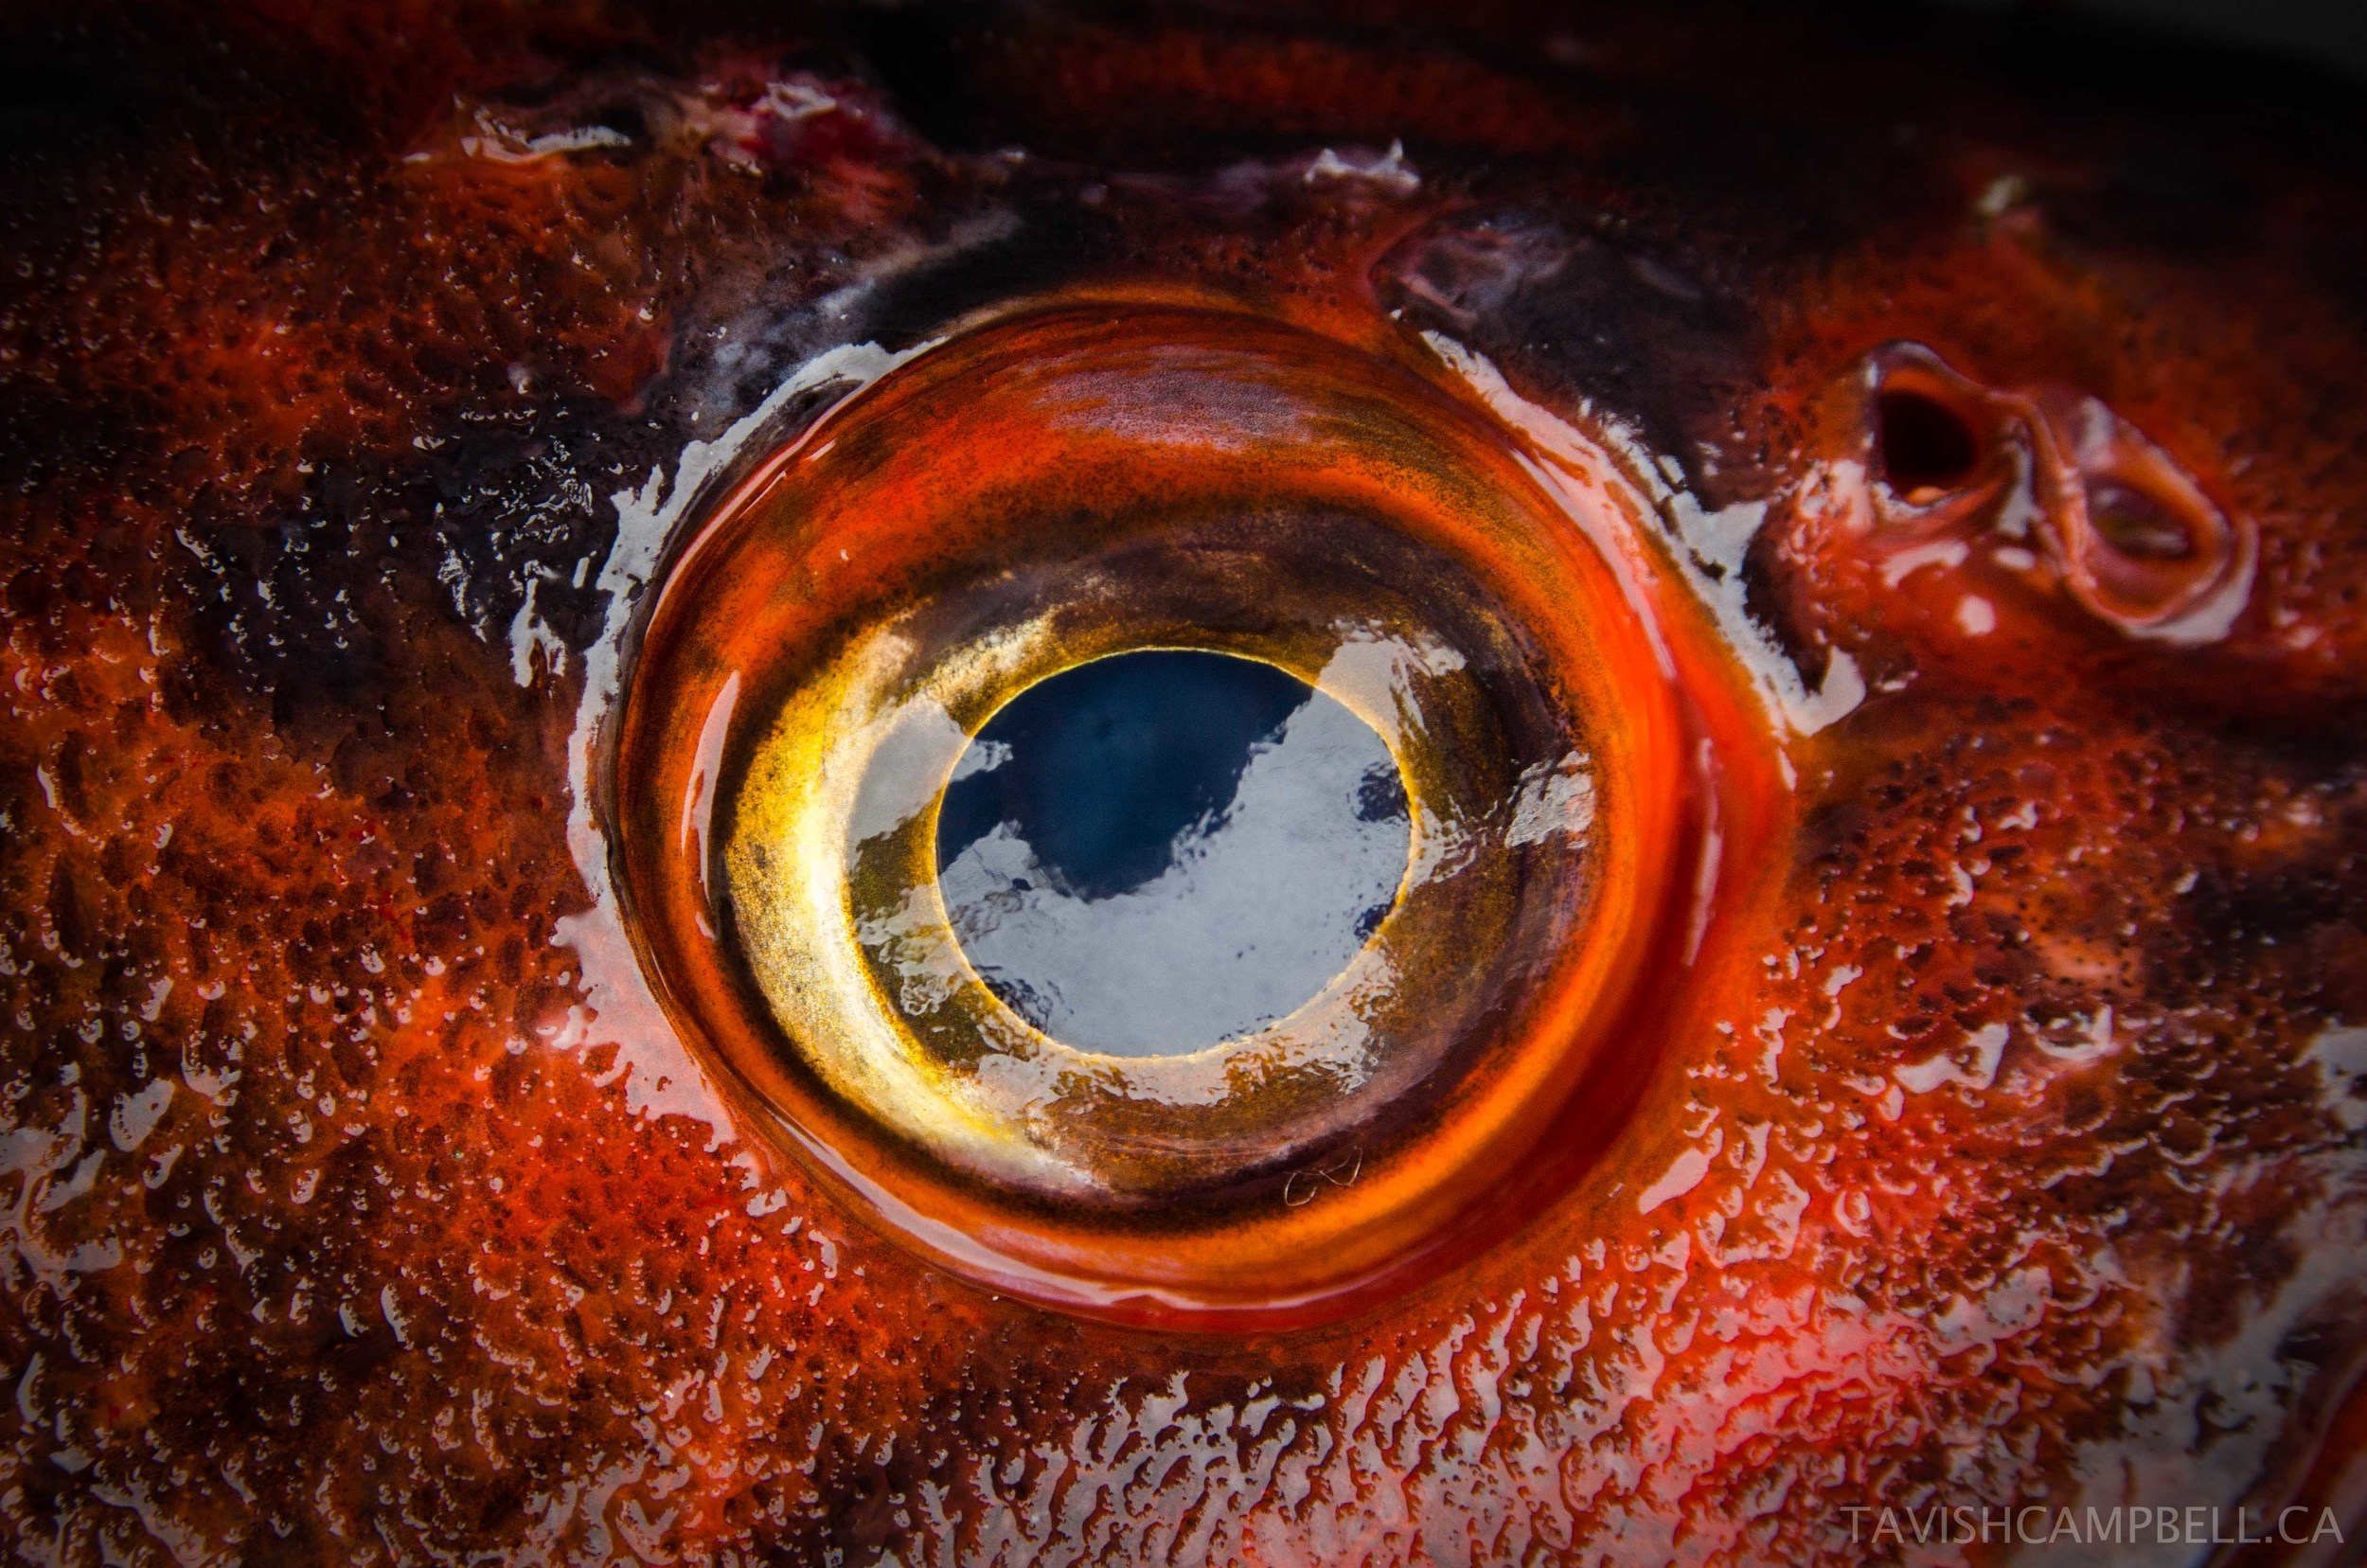 Rockfish, which are amongst the longest living fish on earth, can live for over 200 years. Slow to reproduce, these fish are perfect examples of why No-Take-Zones are crucial to ensure the protection of mature breeding stocks. Possibly the coolest fish on the coast.